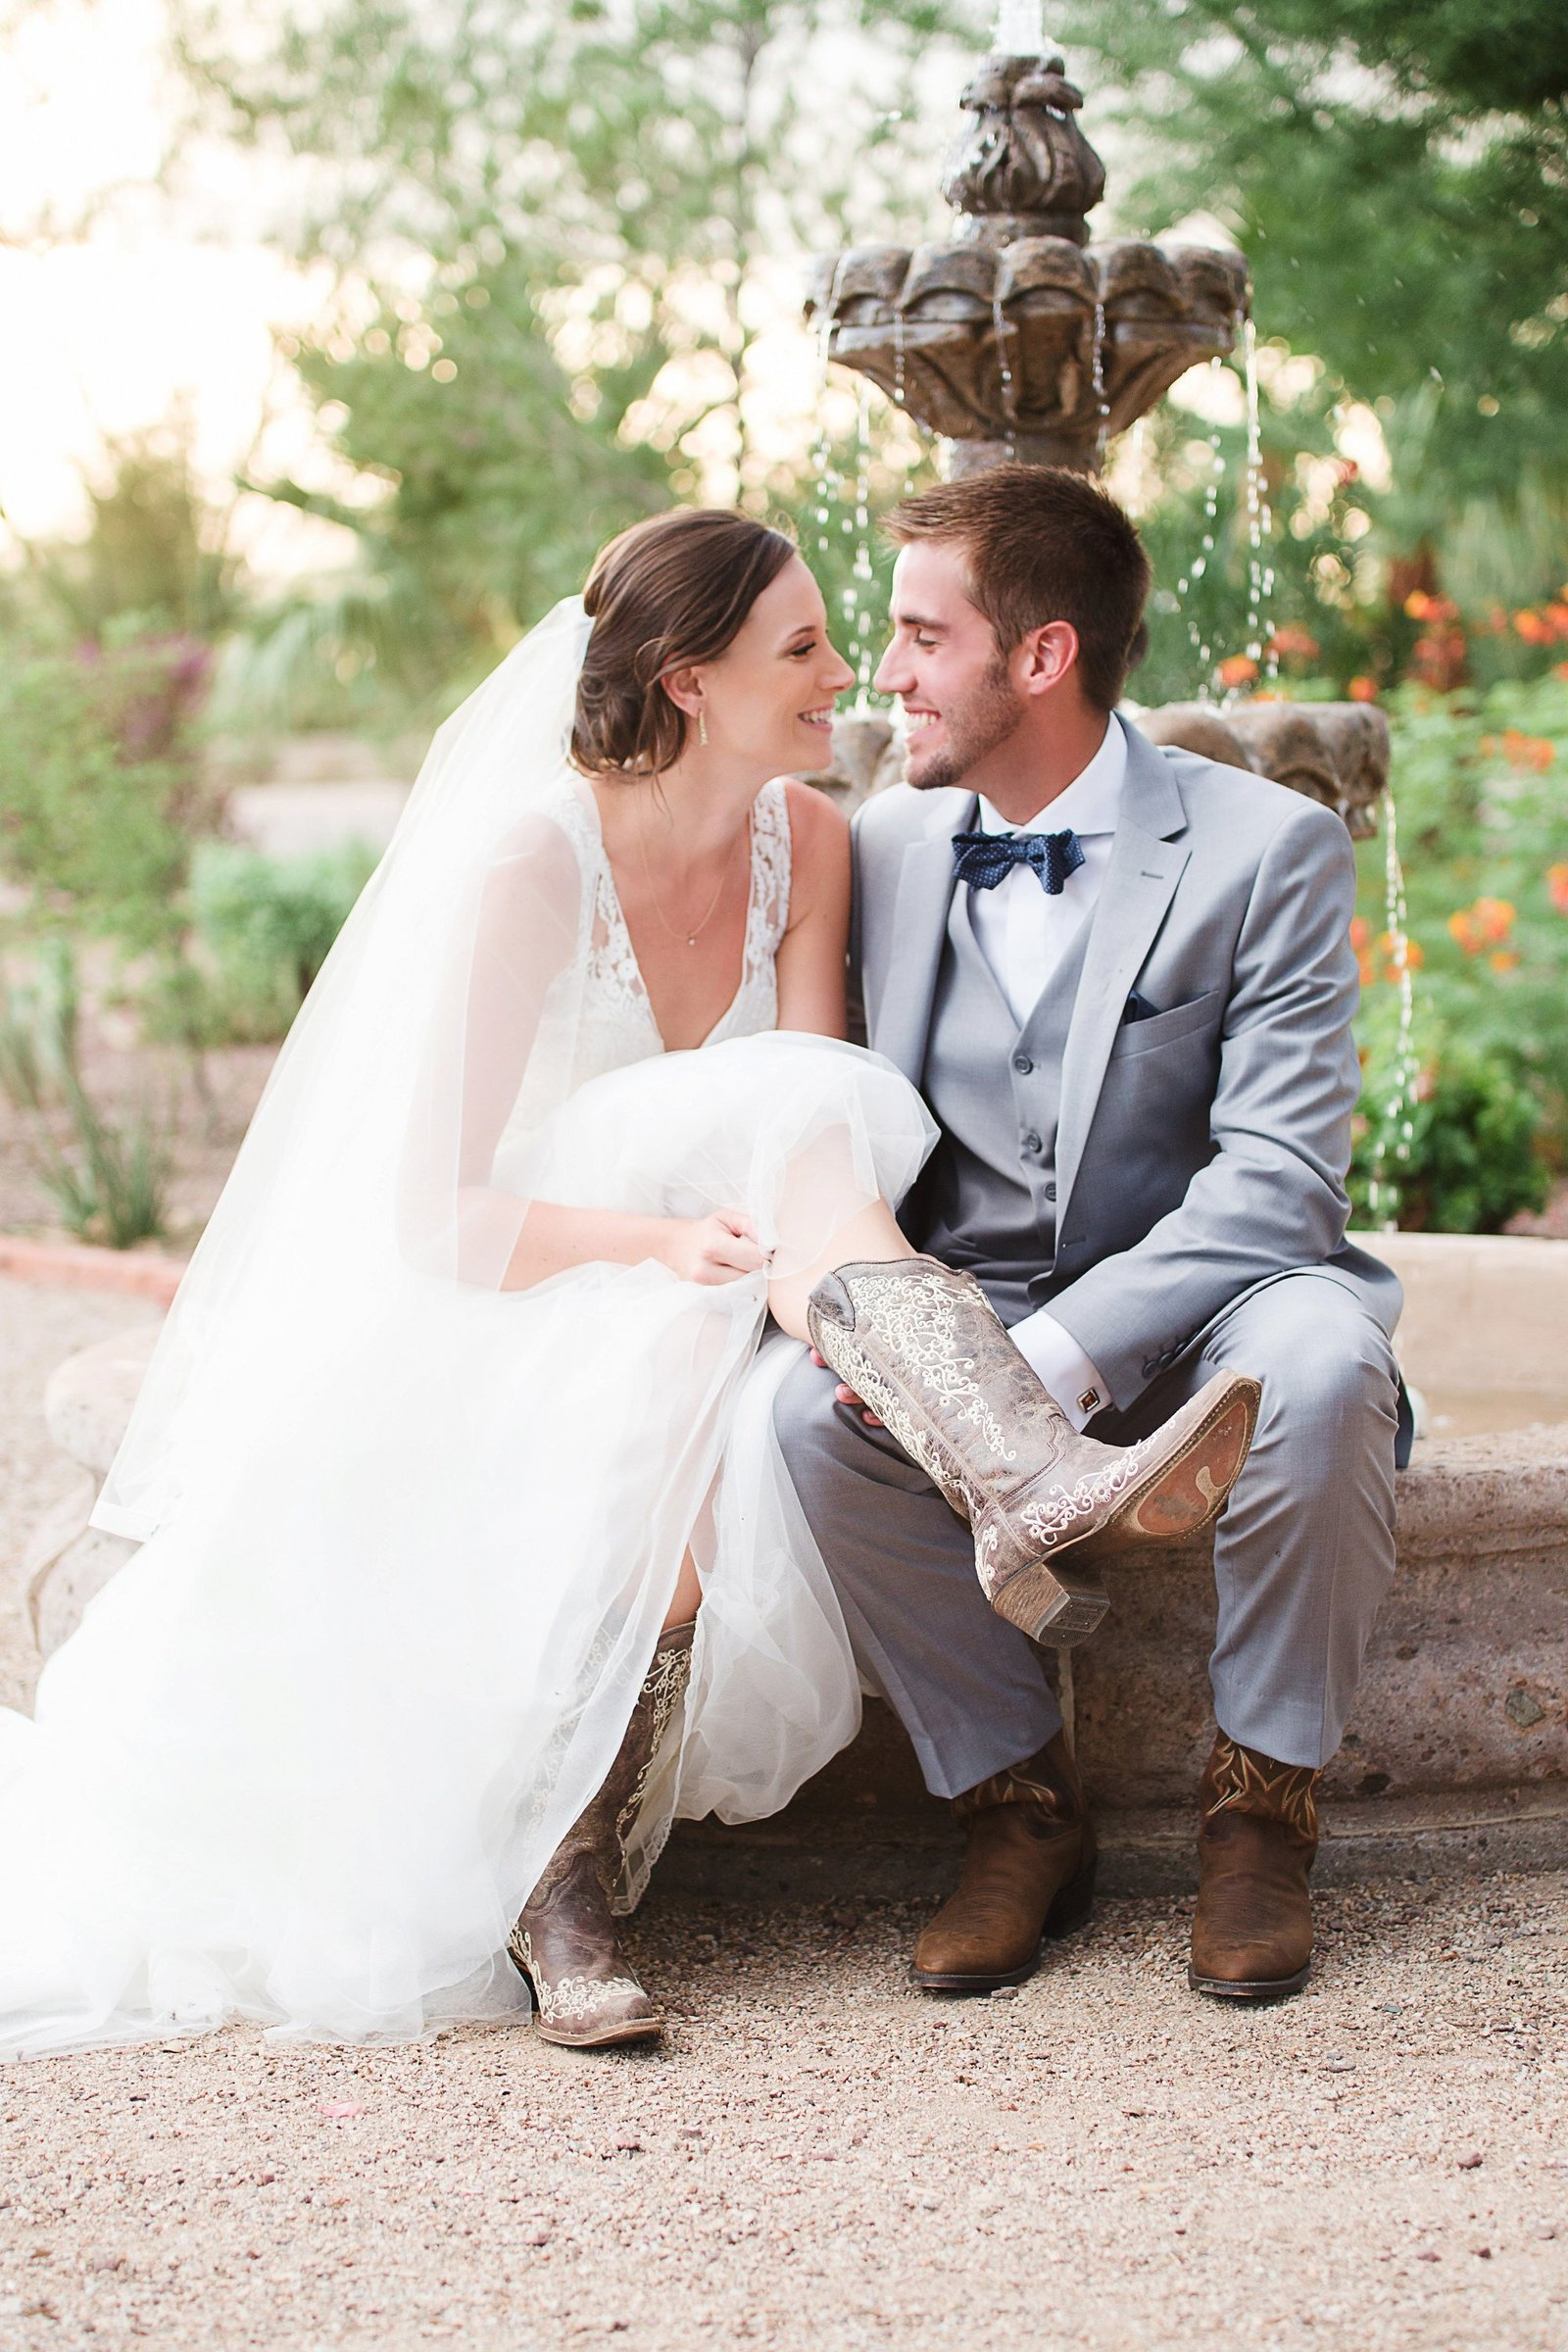 Bride + Groom Portraits Denver Colorado Springs CO Wedding Photographer Genevieve Hansen 017